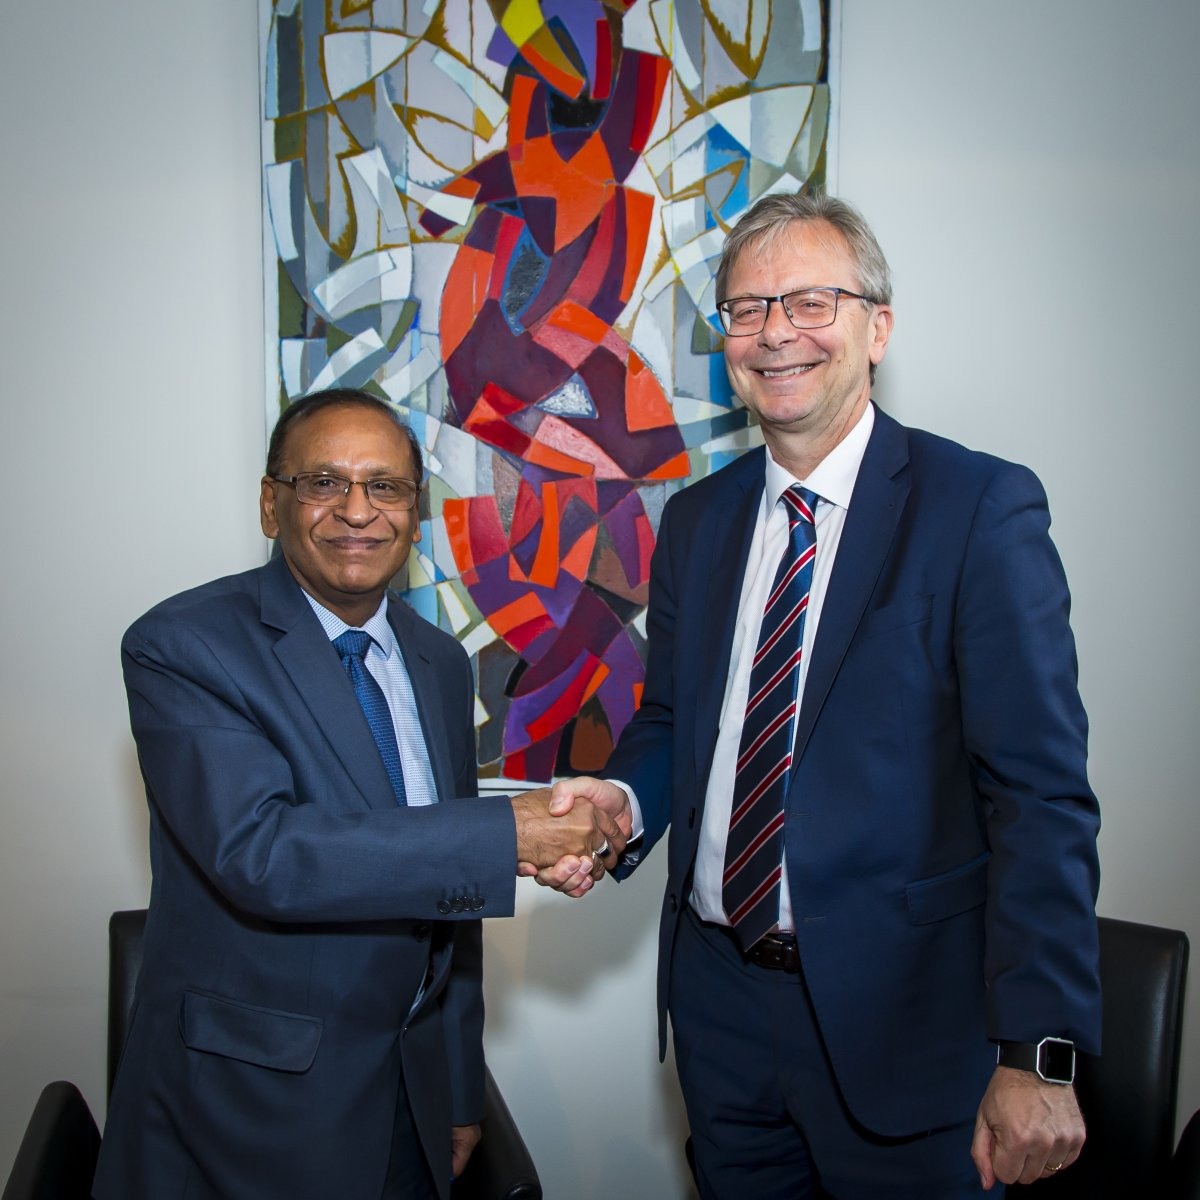 Rajiv K. Nagpal, India's ambassador in Iceland and Jón Atli Benediktsson, Rector at the University of Iceland